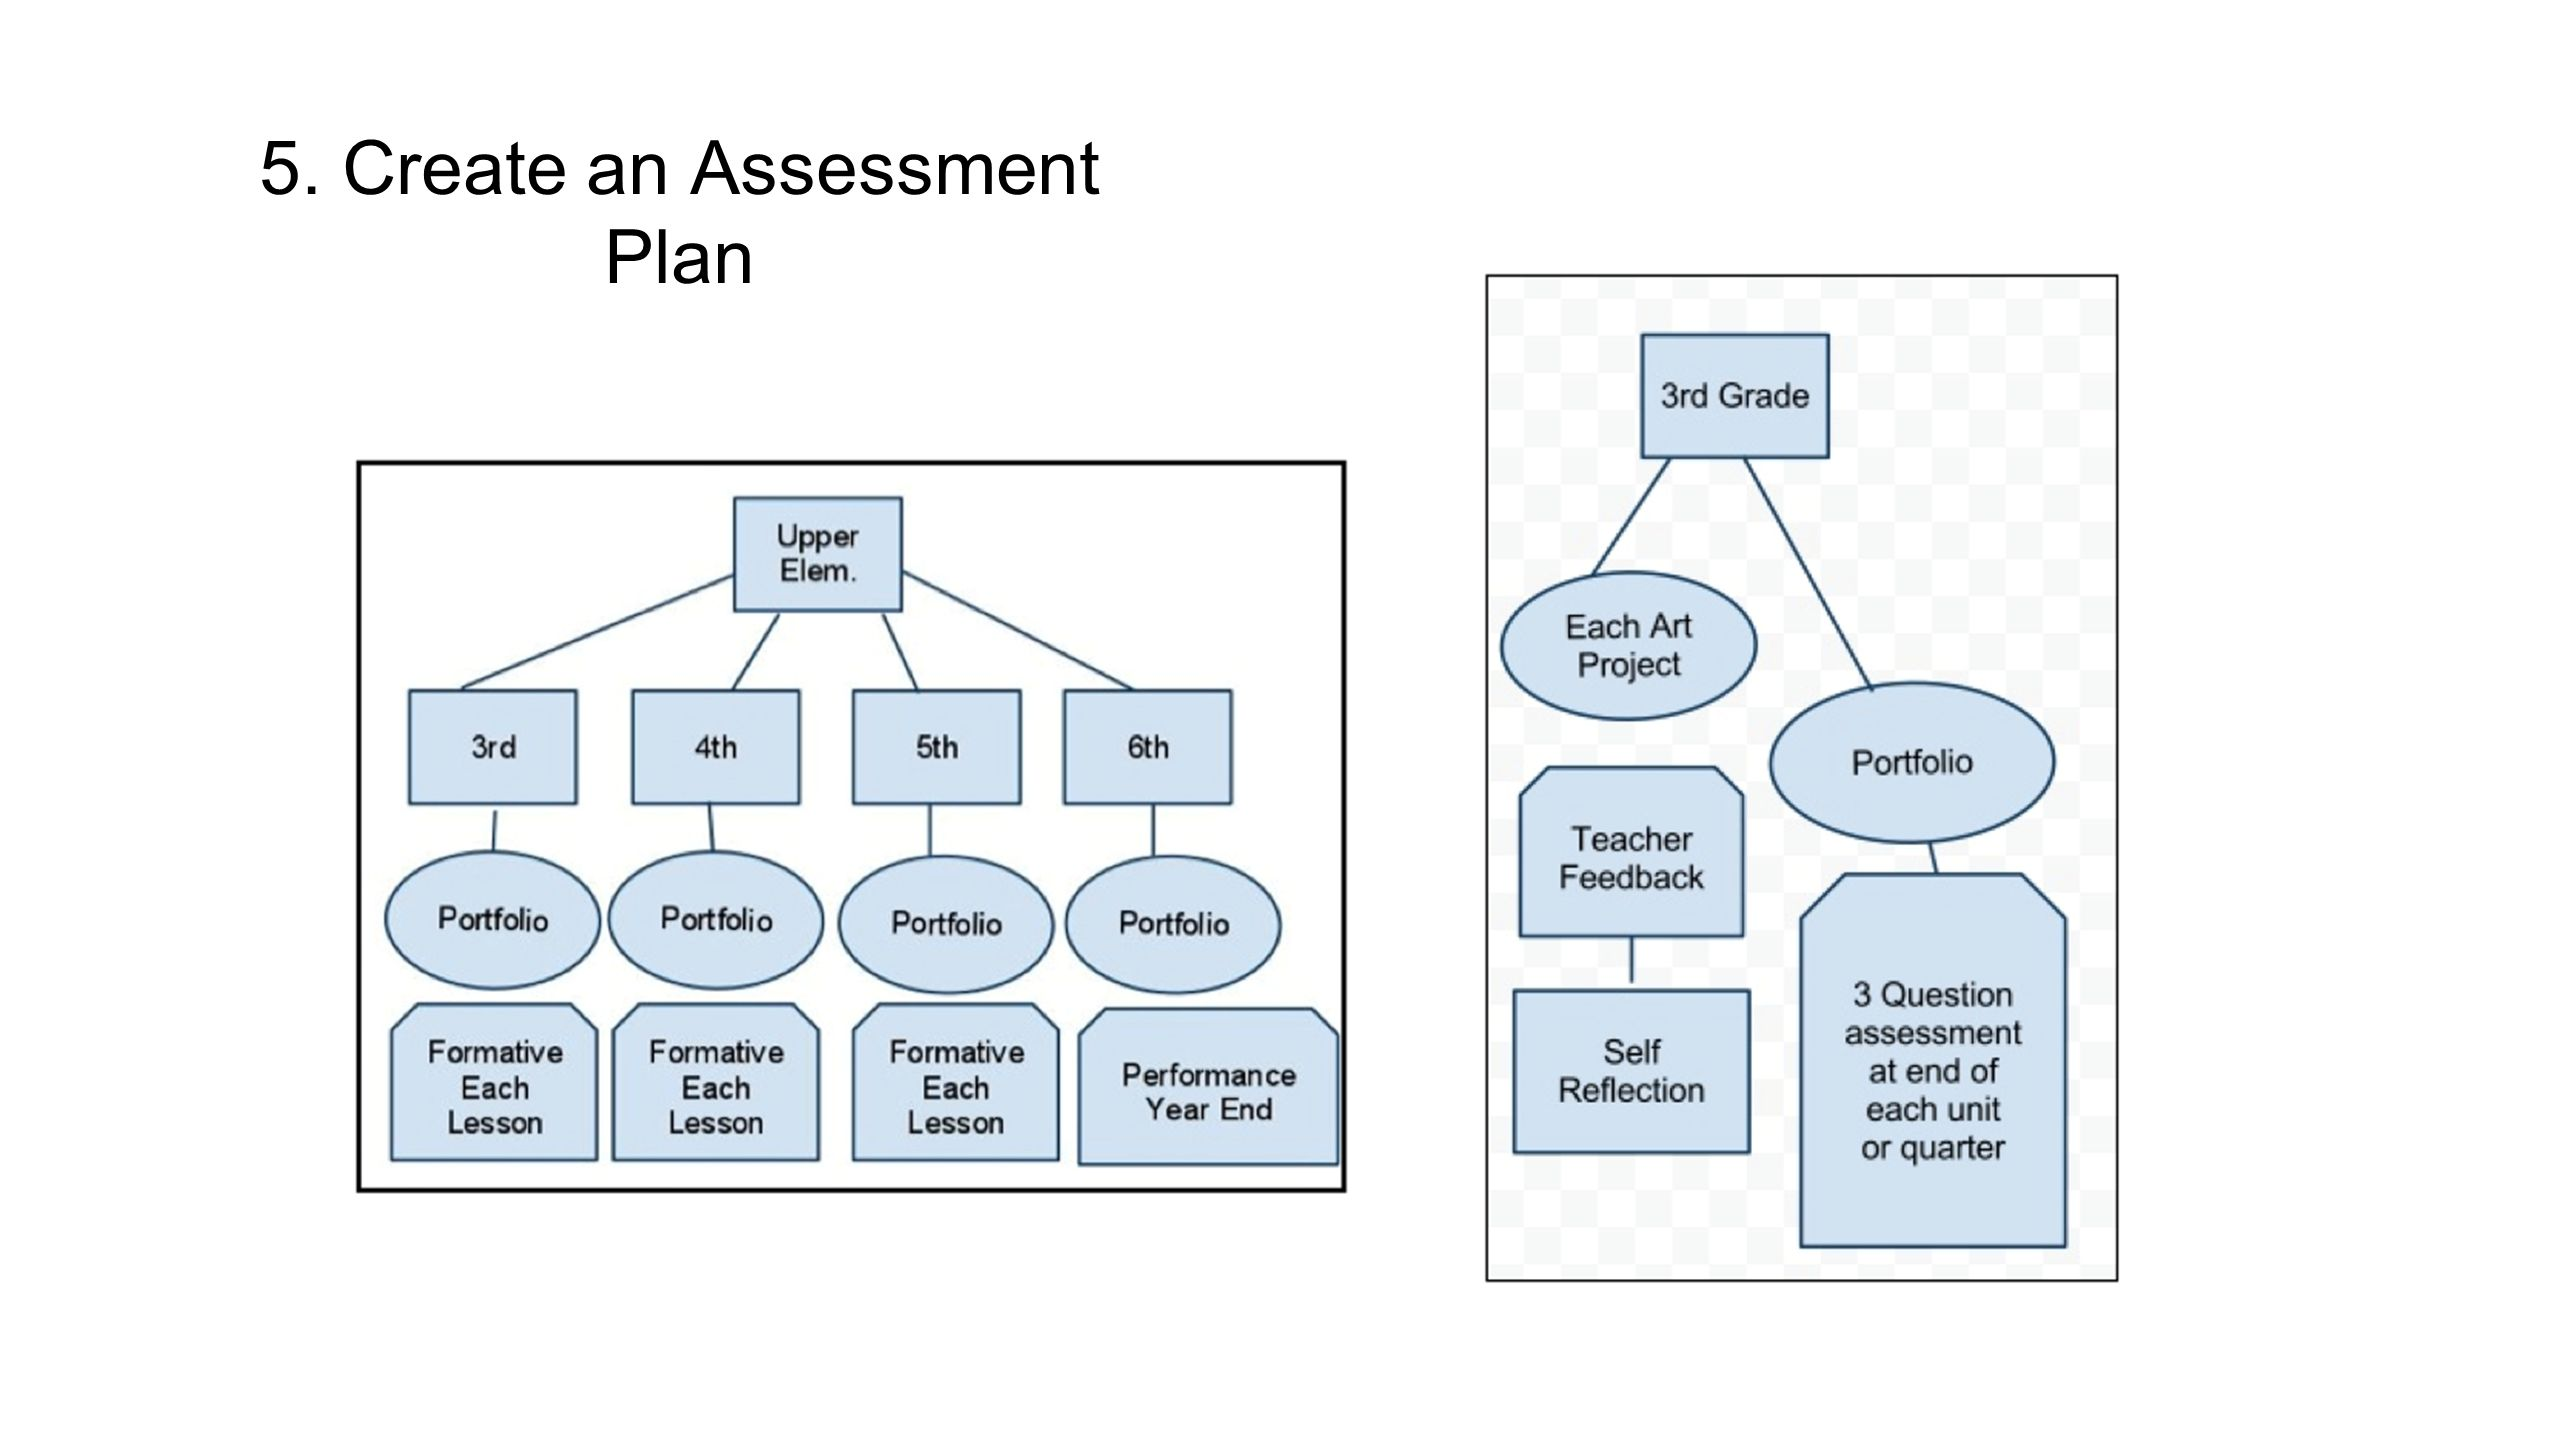 5. Create an Assessment Plan